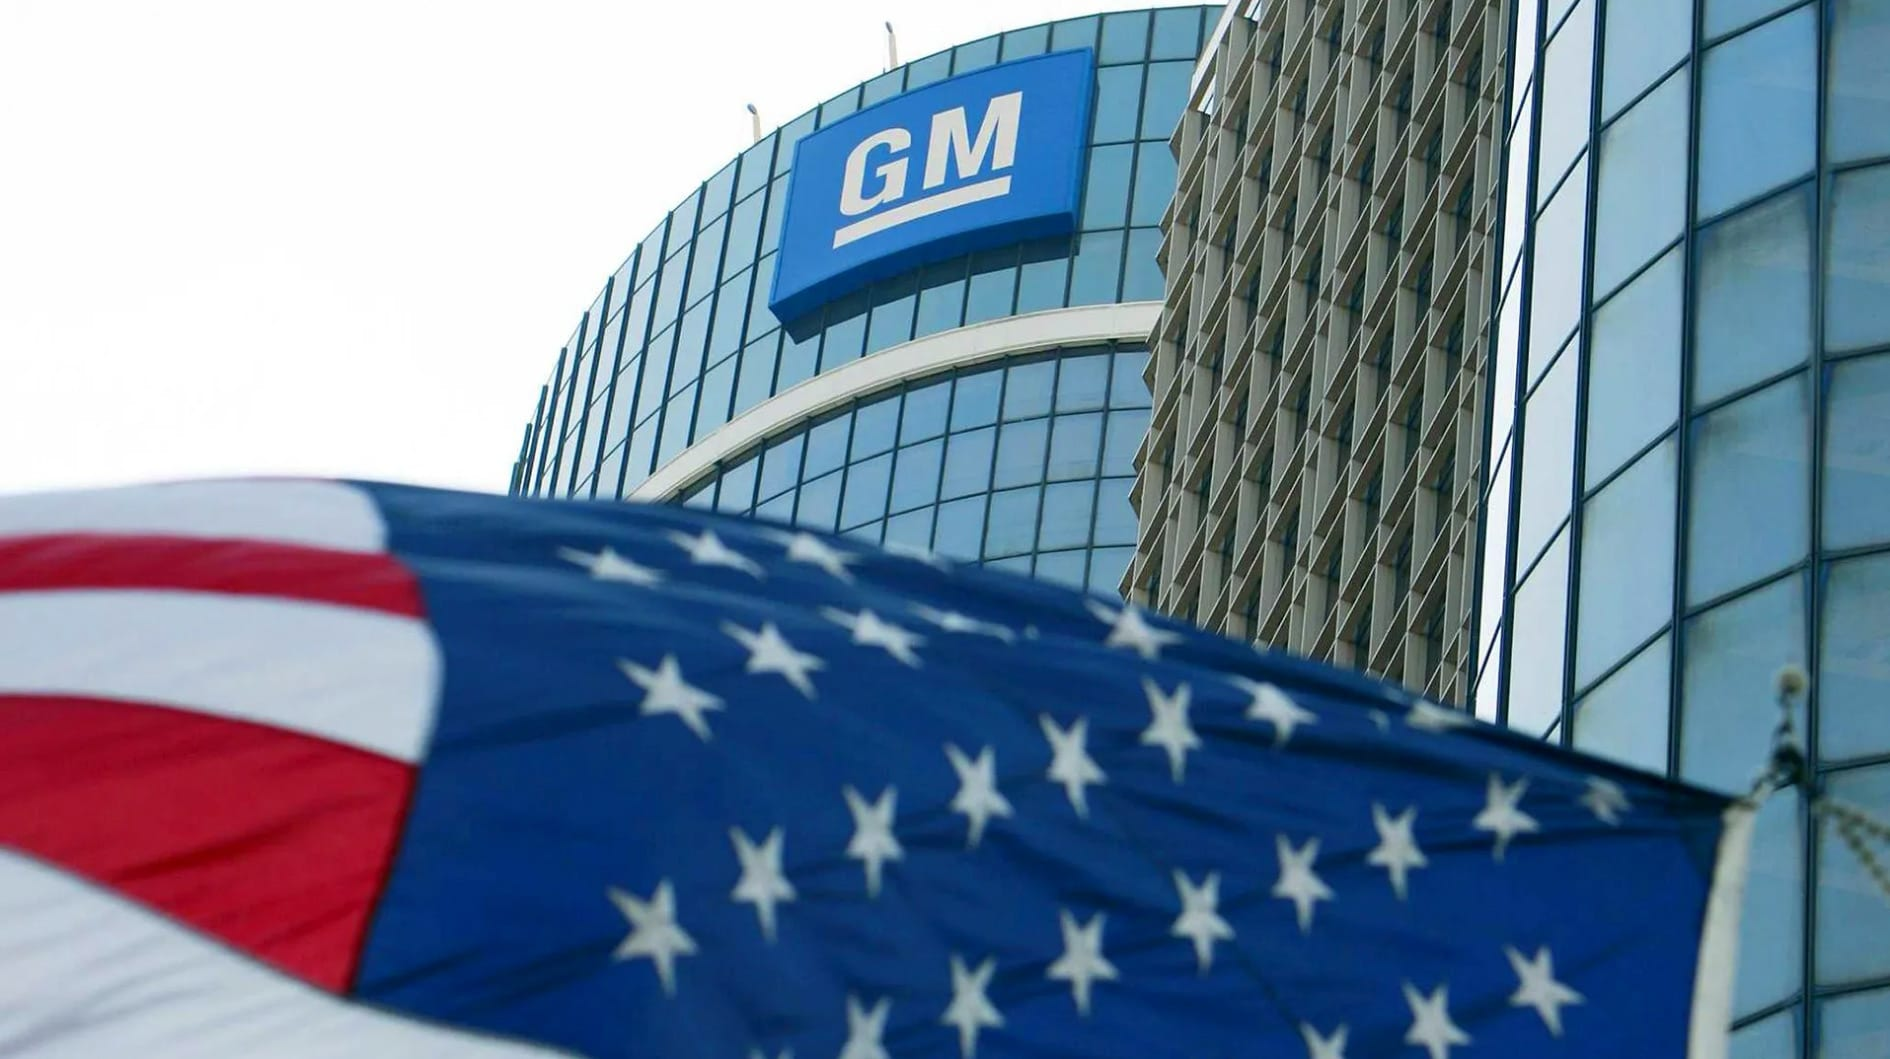 GM COMPENSATION FUND ANNOUNCES FIRST CLAIMS